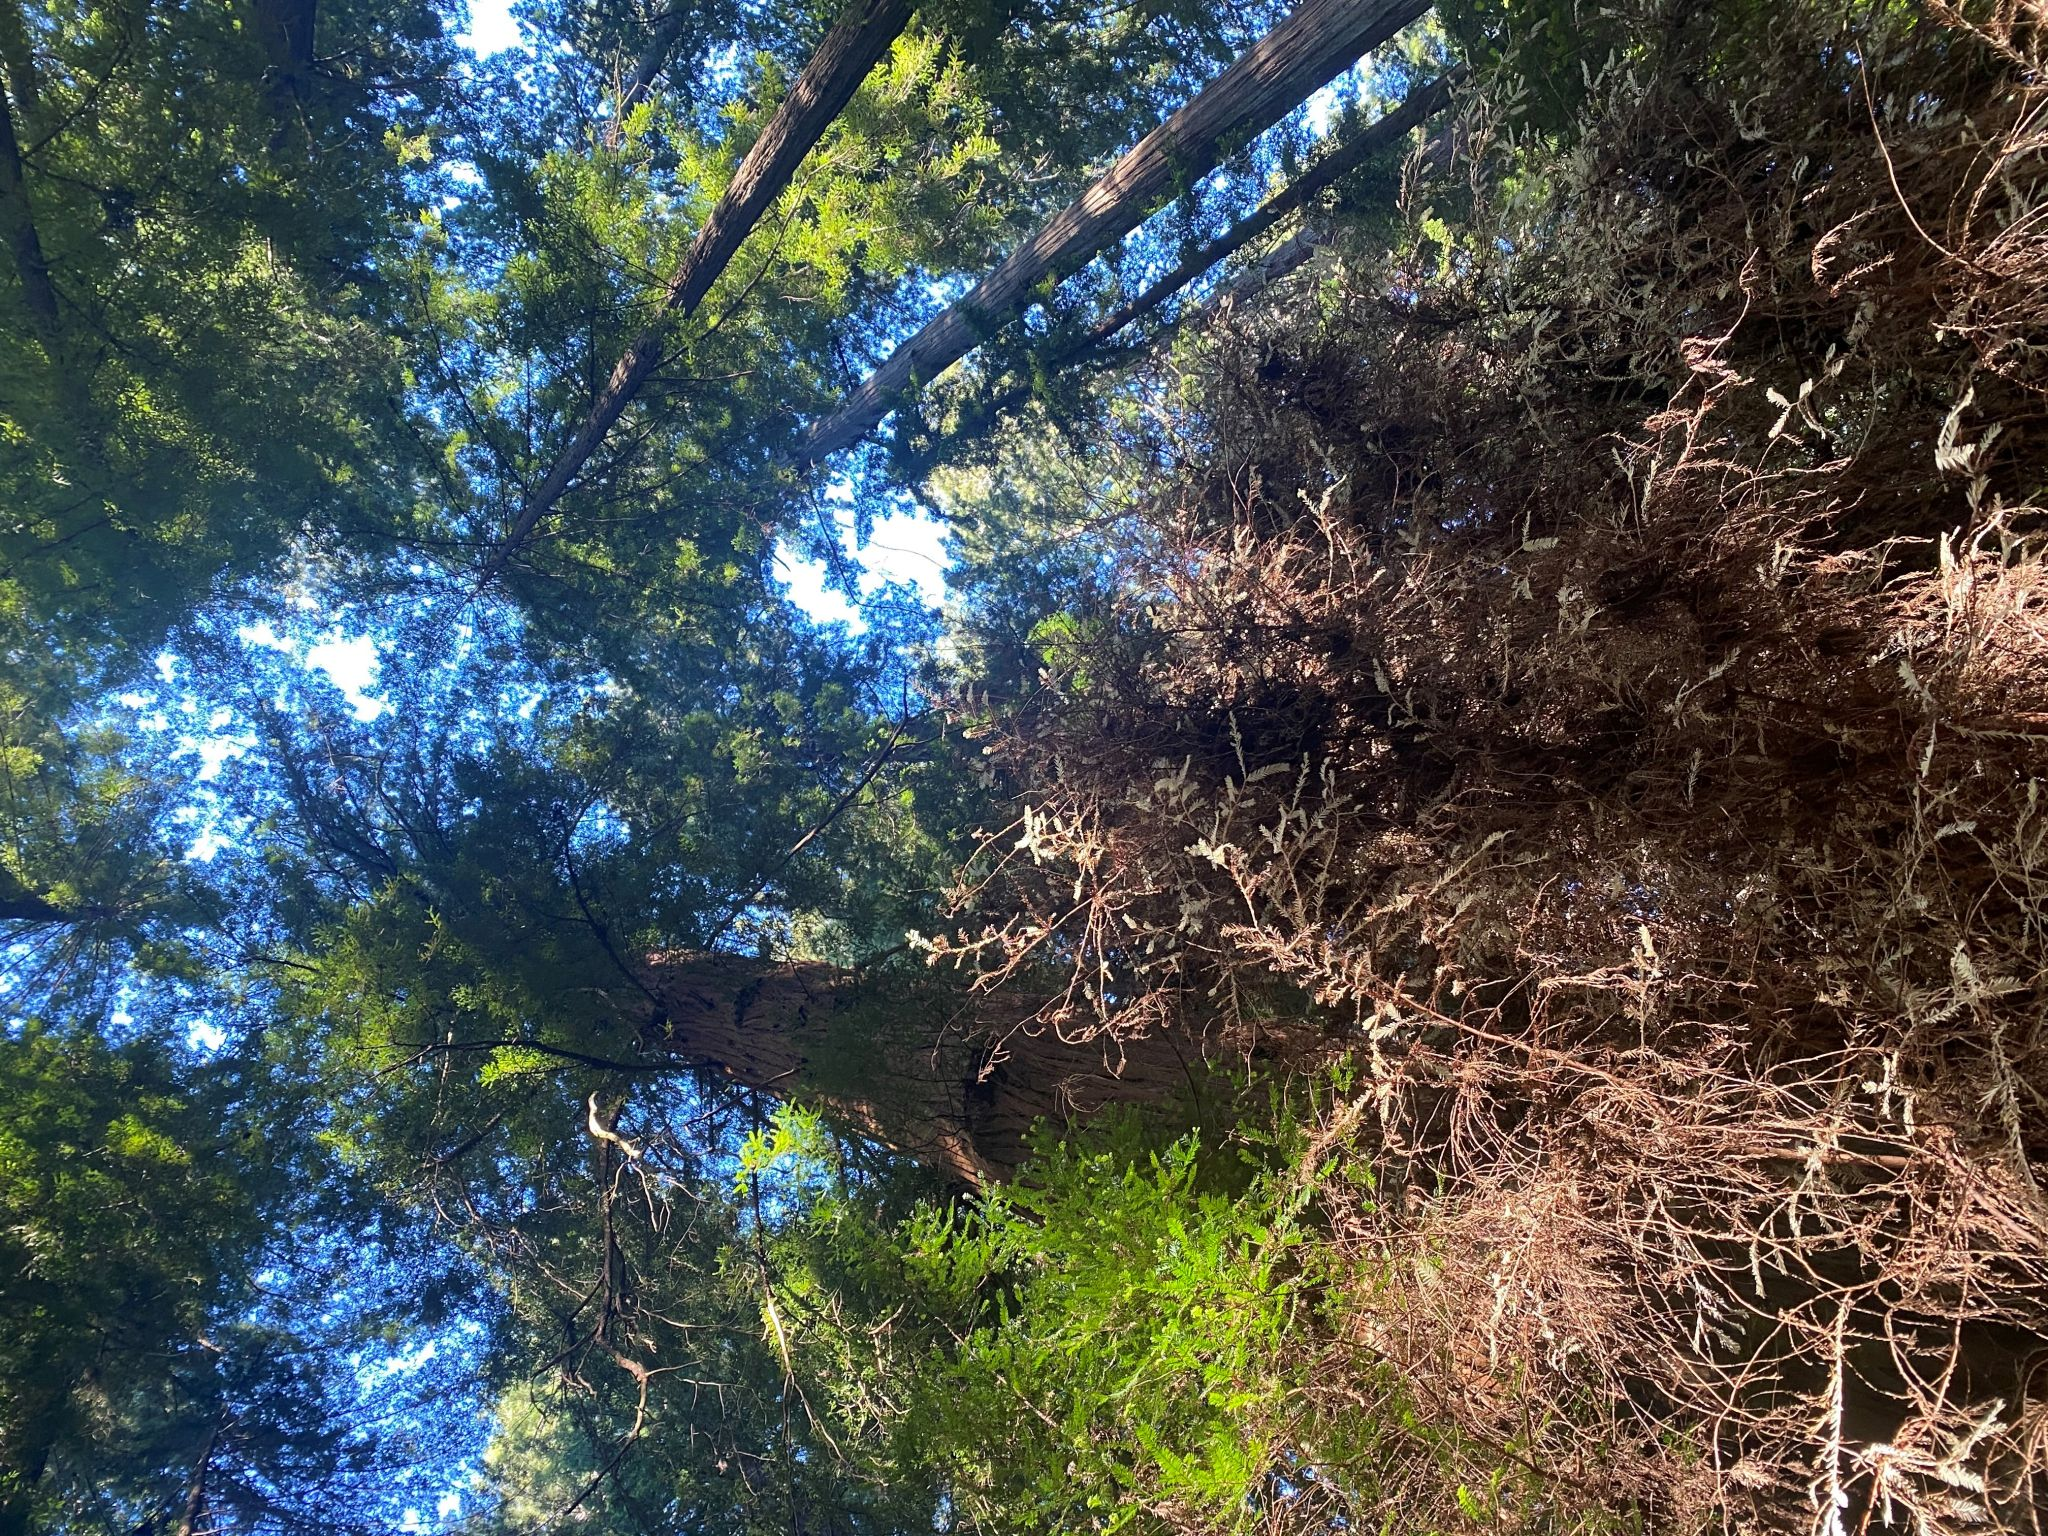 I went into California's forests to find a rare albino redwood